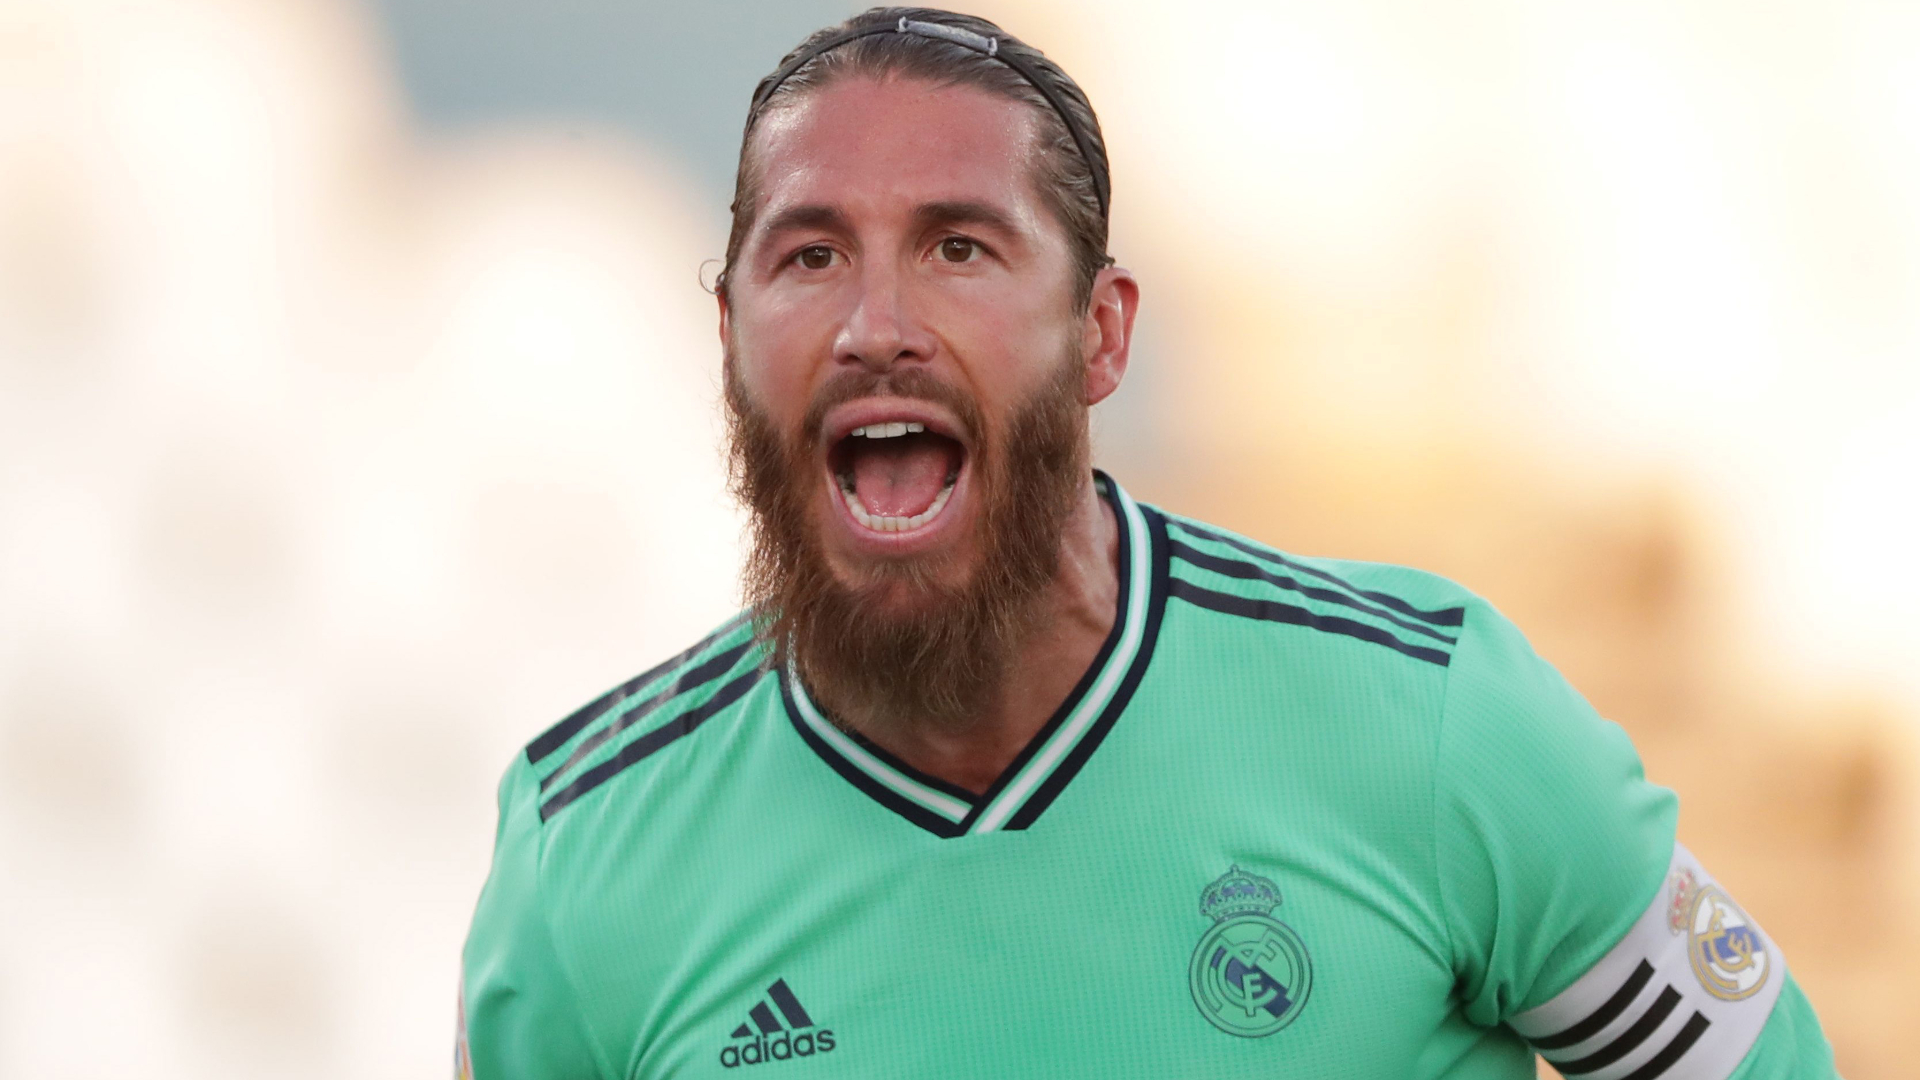 Rumour Has It: Madrid captain Ramos makes contract demands, Barca and Man City in transfer talks